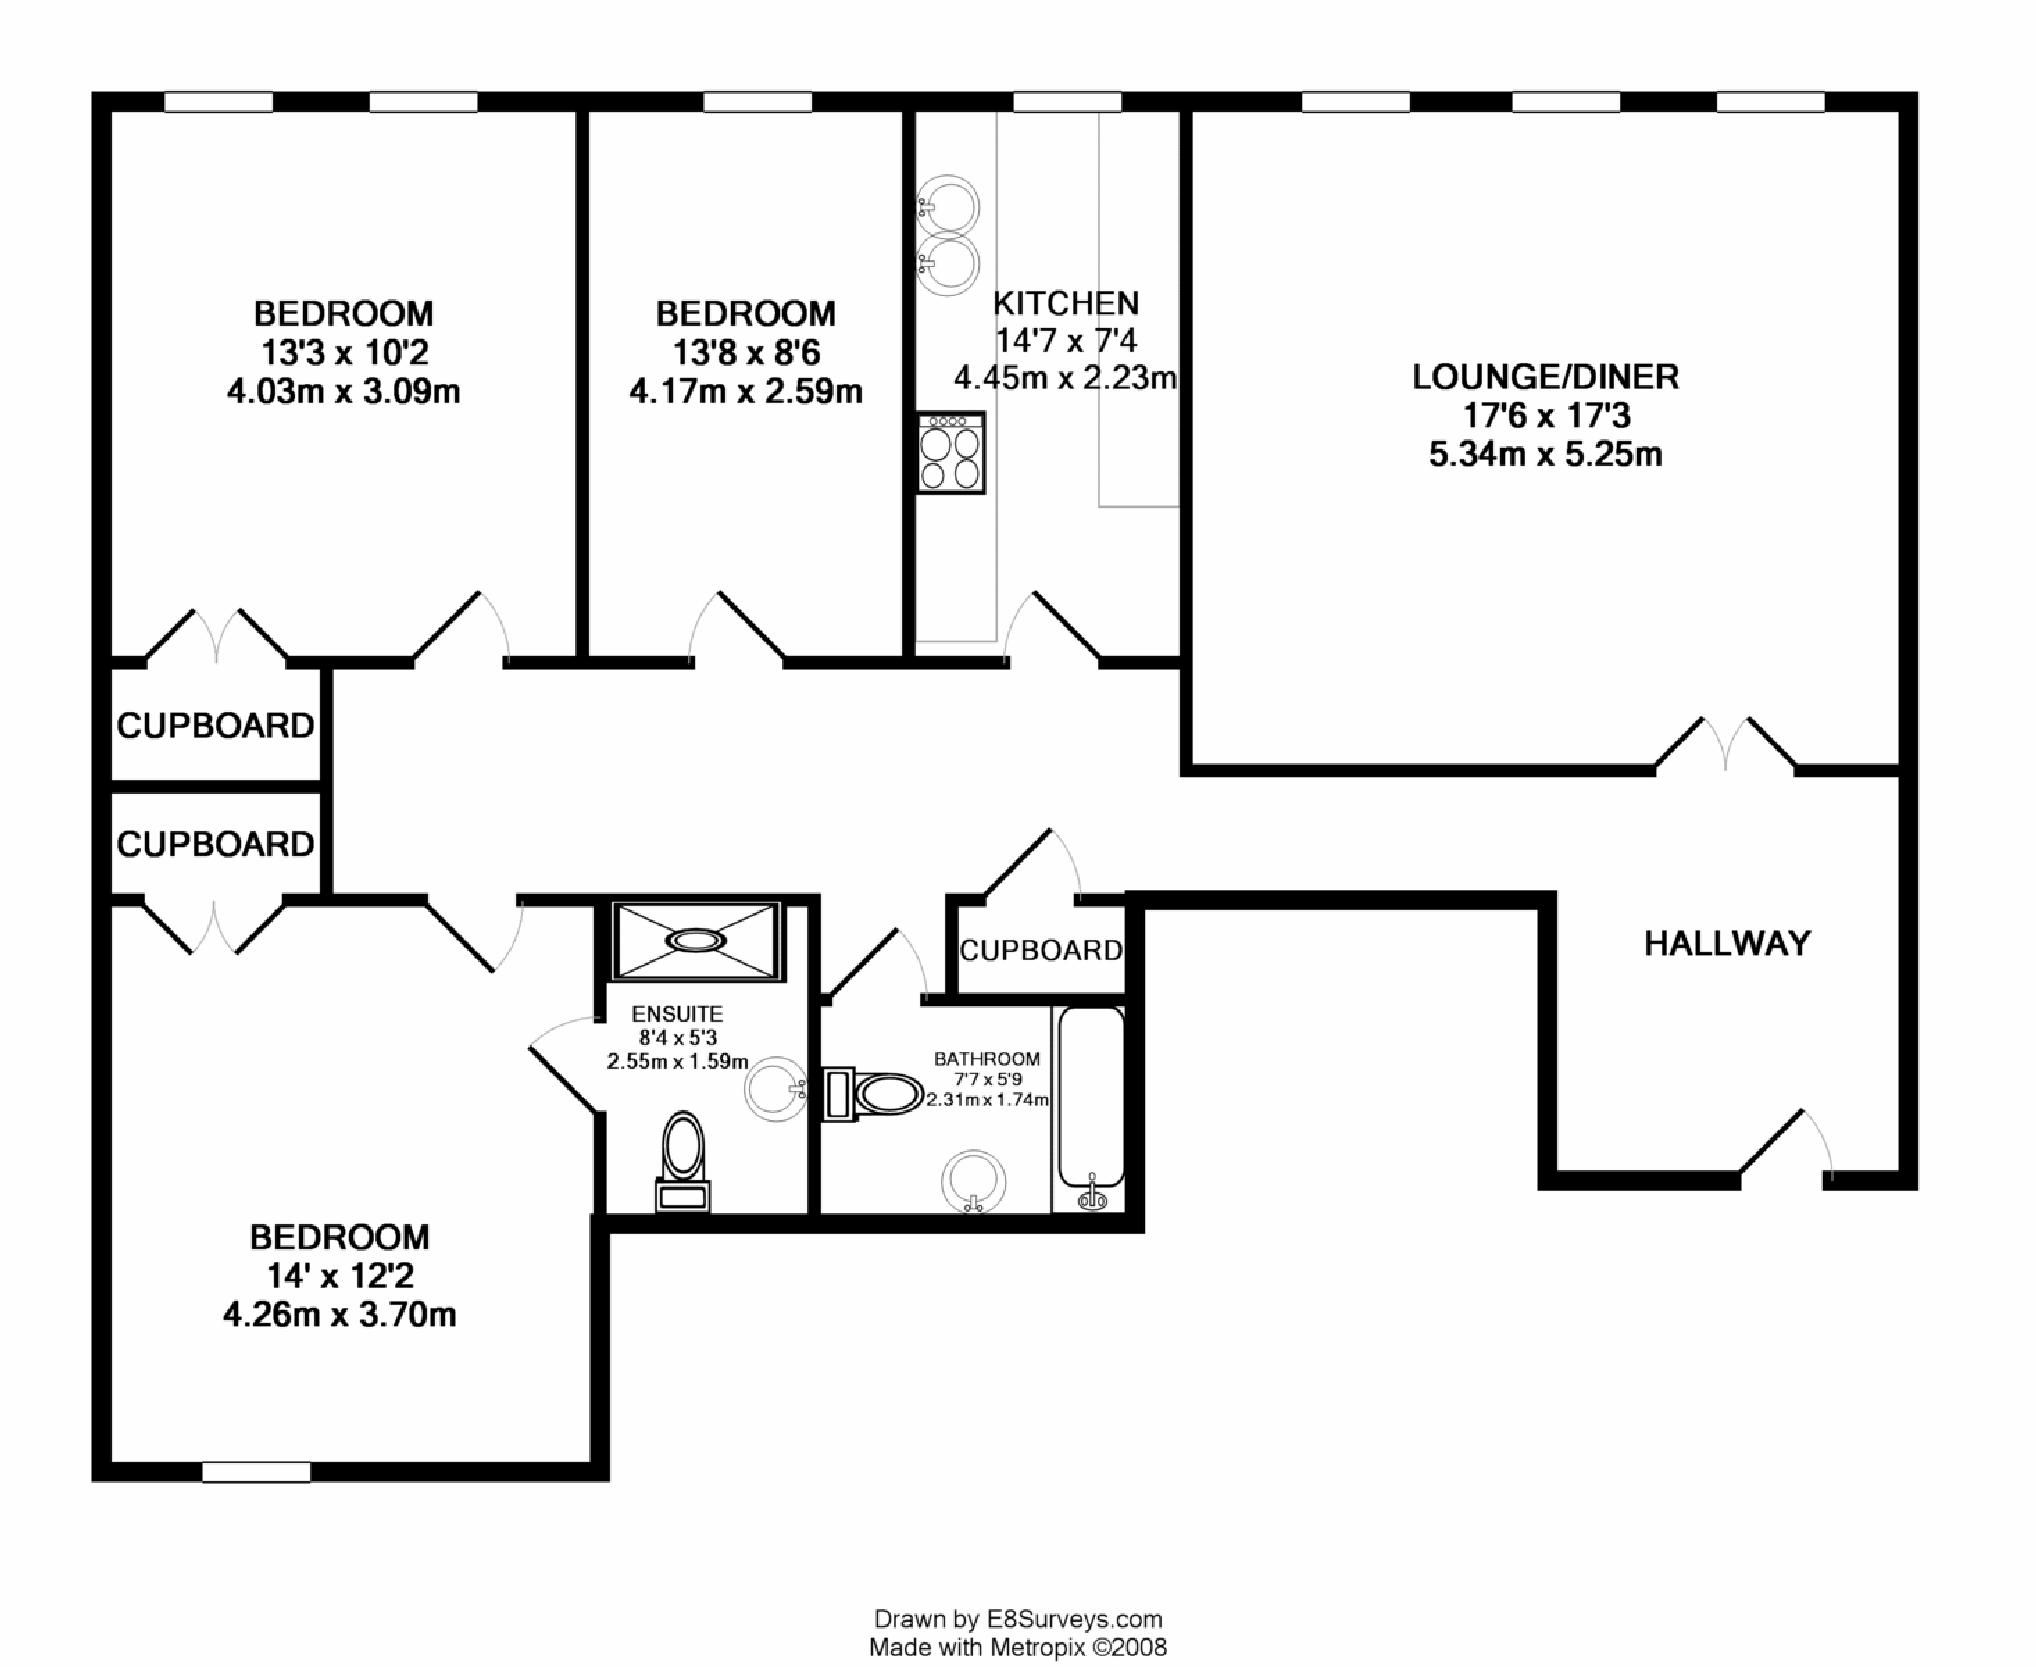 Federation With Images Bedroom Floor Plans Floor Plans 3